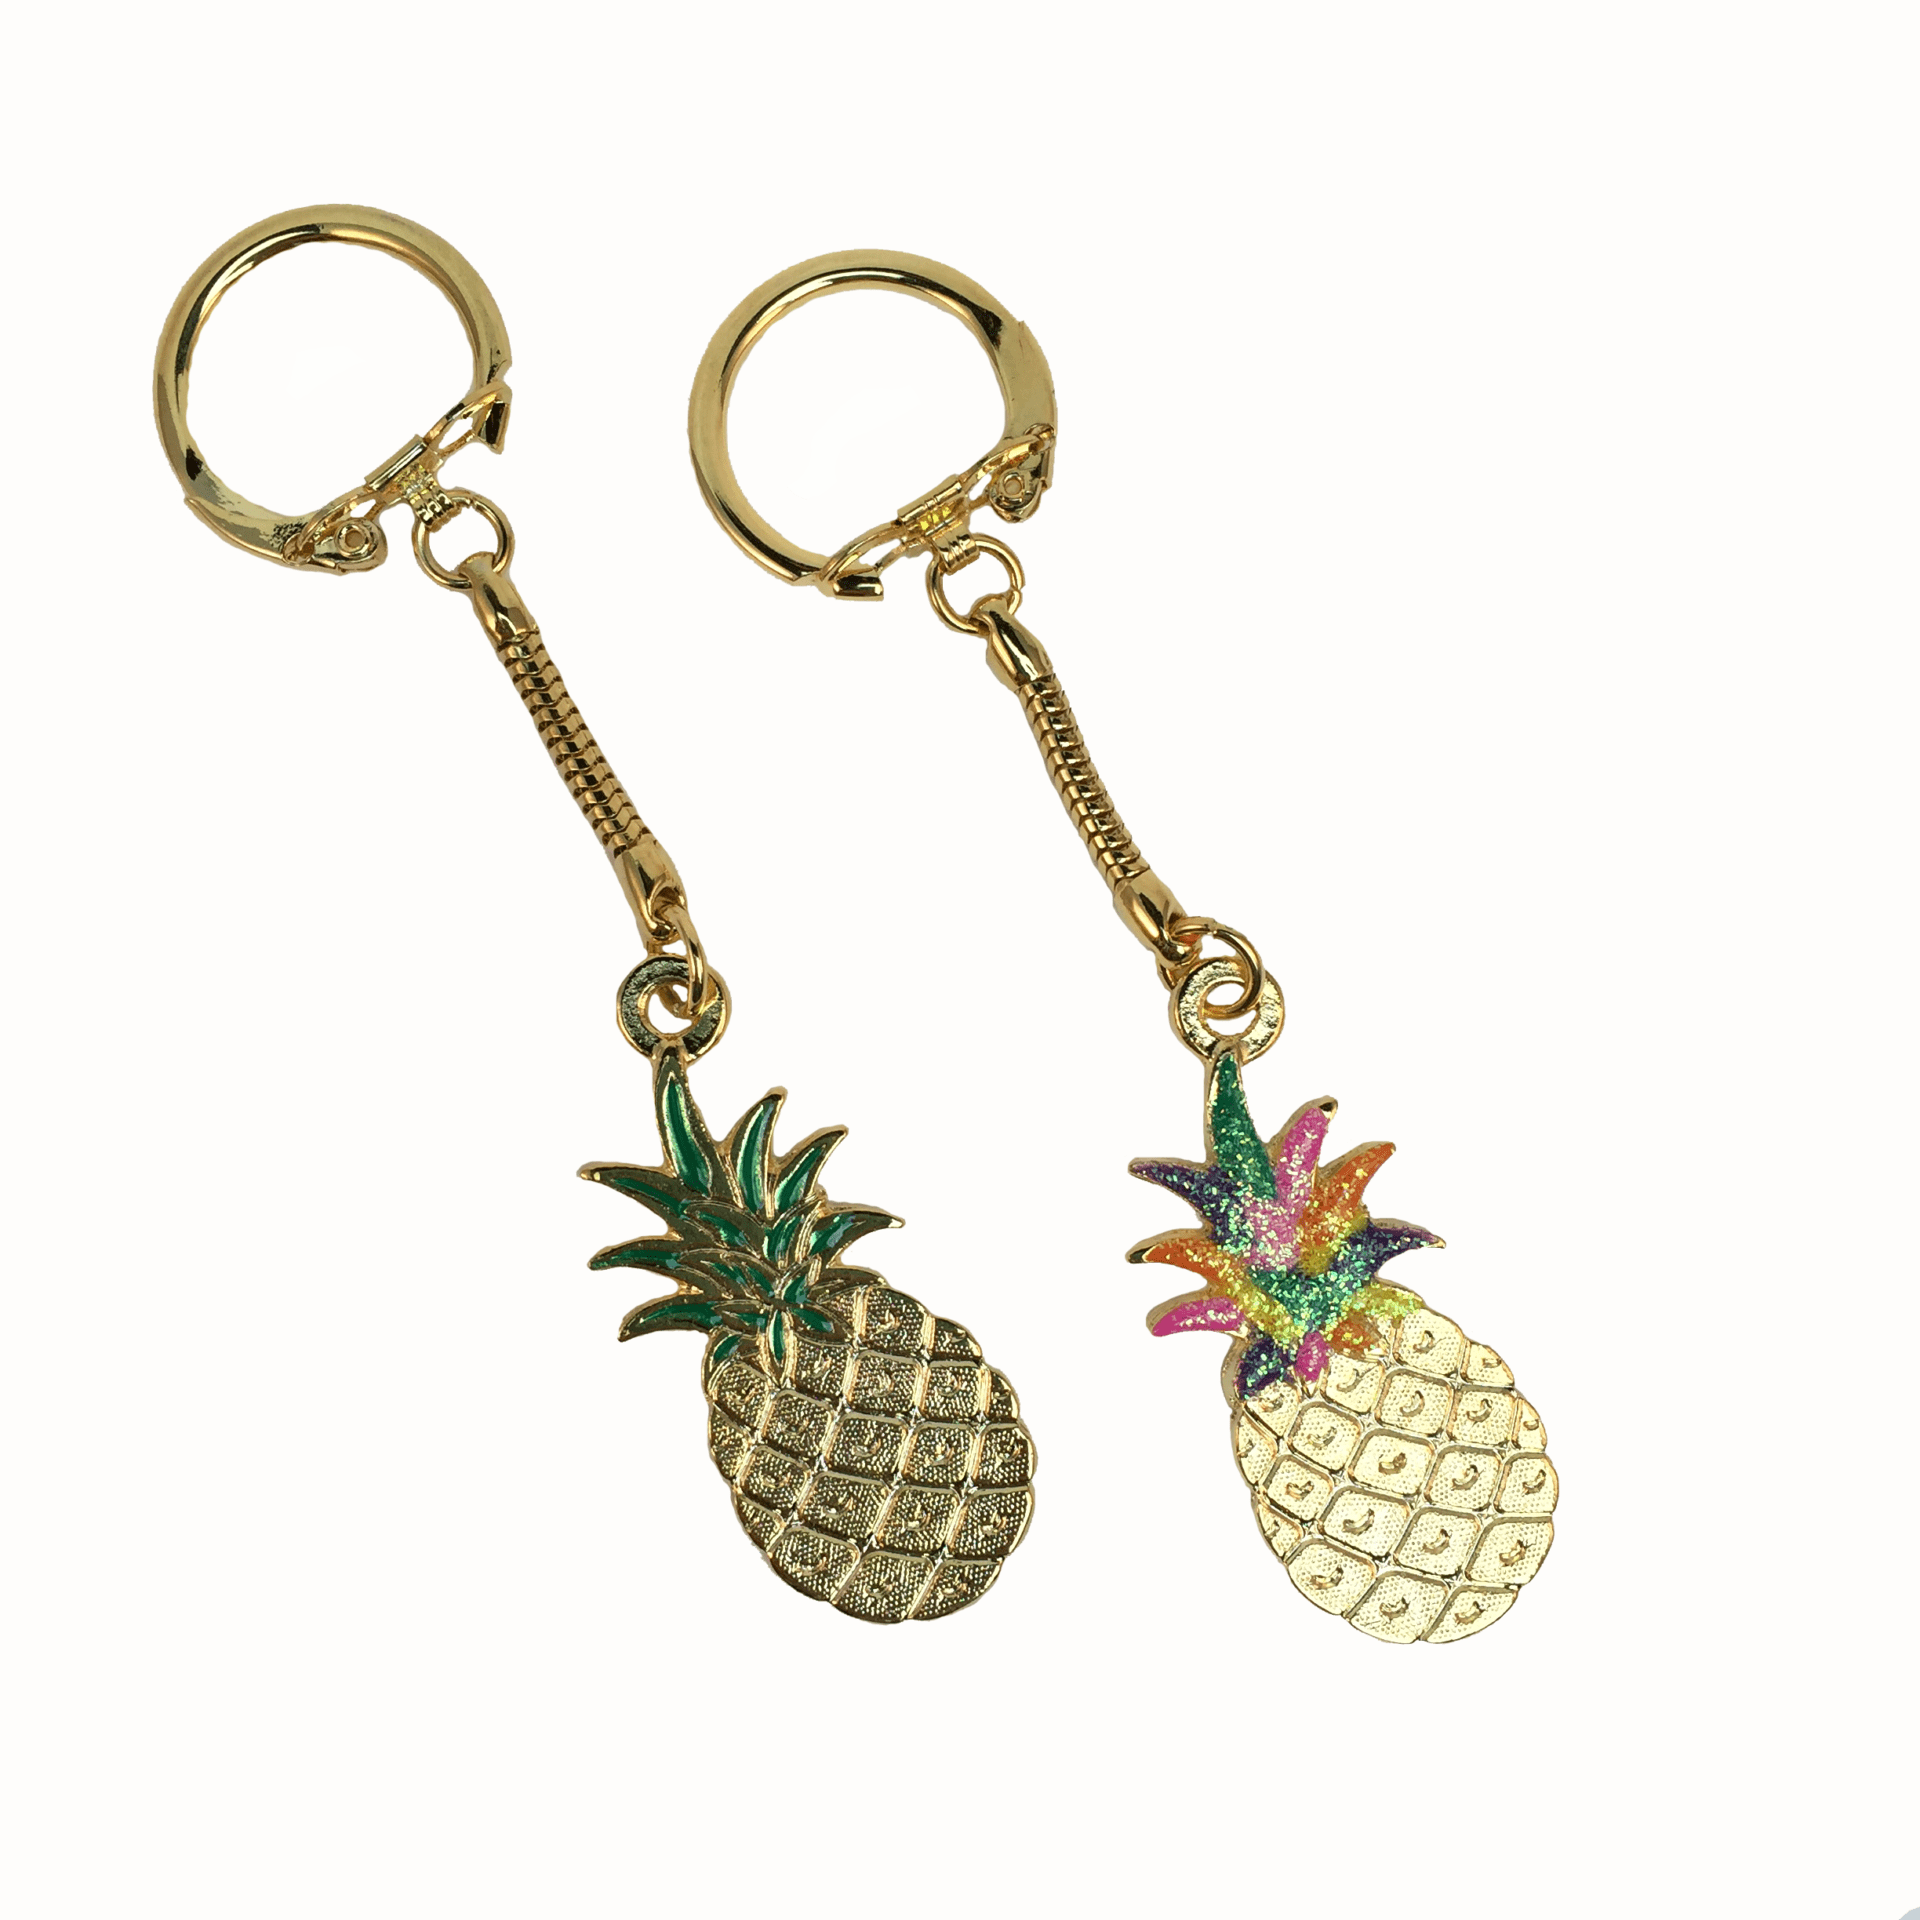 Keychains with Pineapple